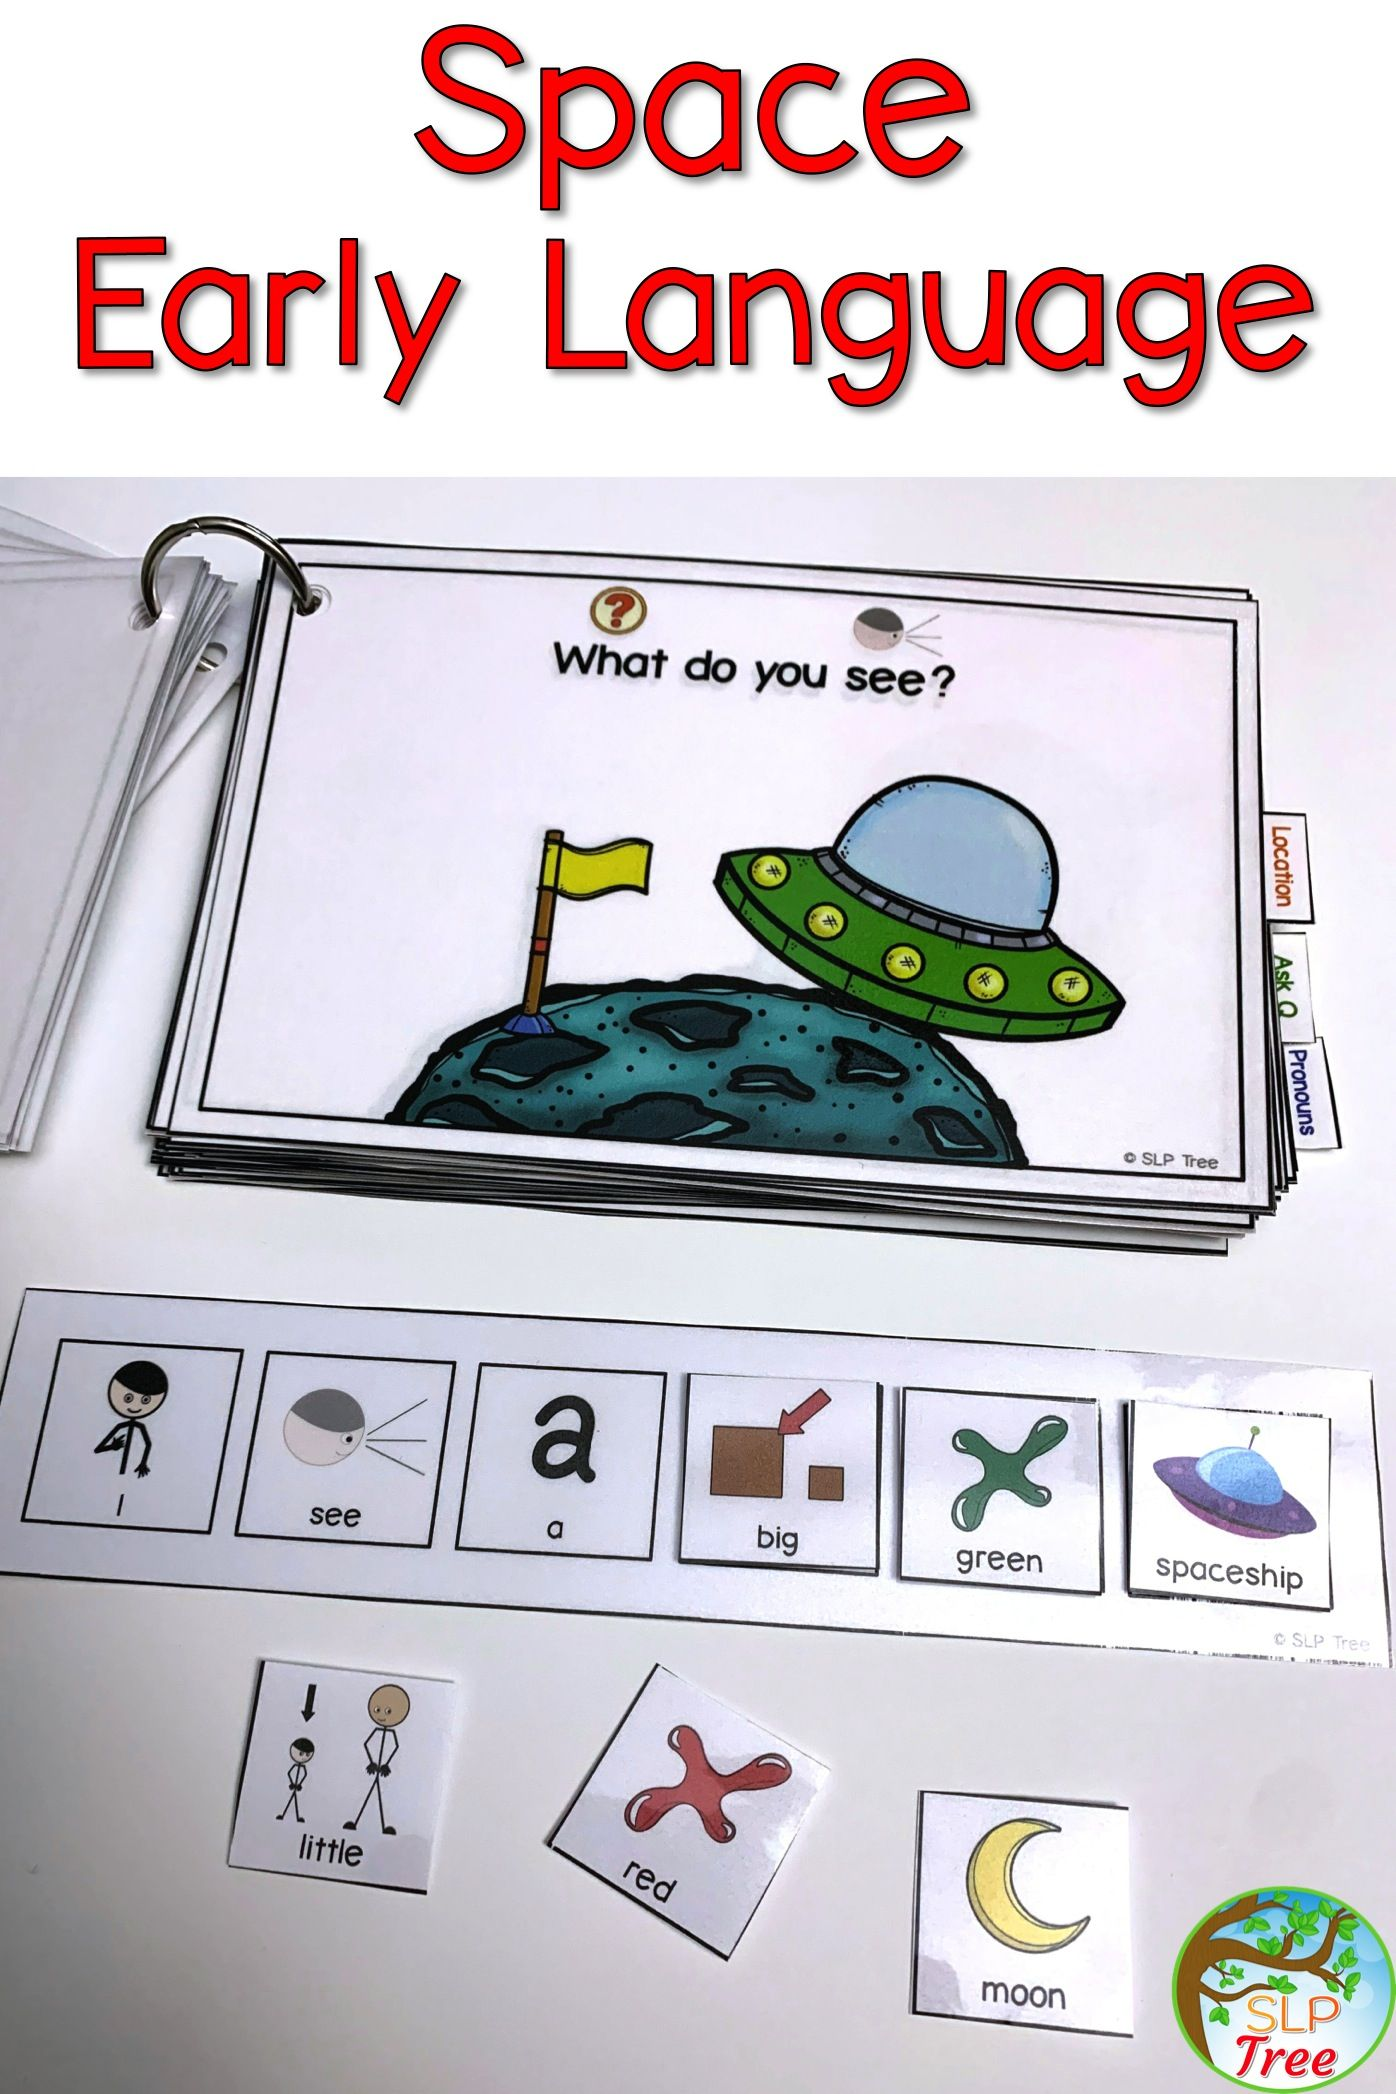 Space Early Language